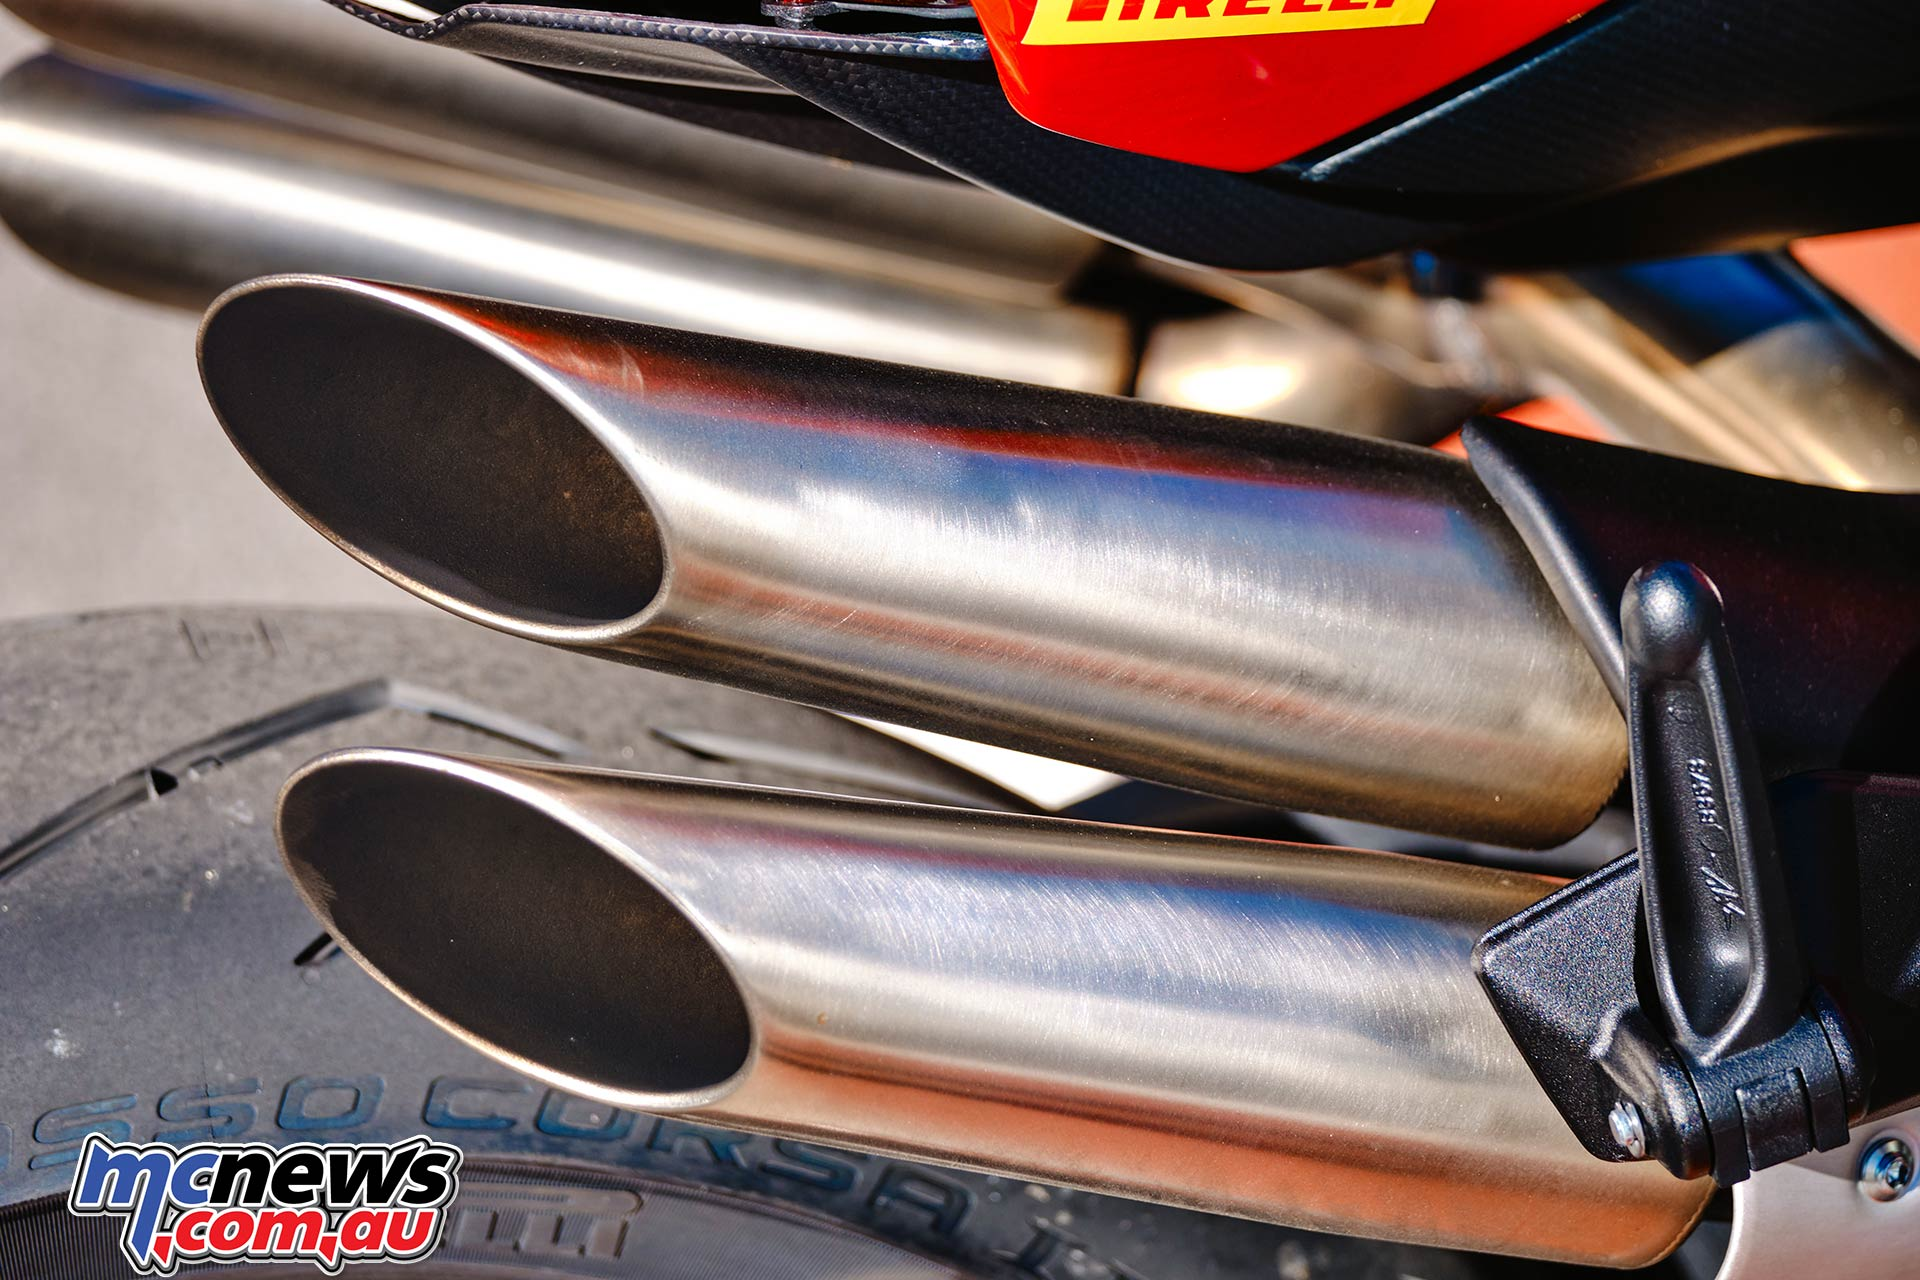 Four-into-one-into-four exhaust system which is made in partnership with Arrow